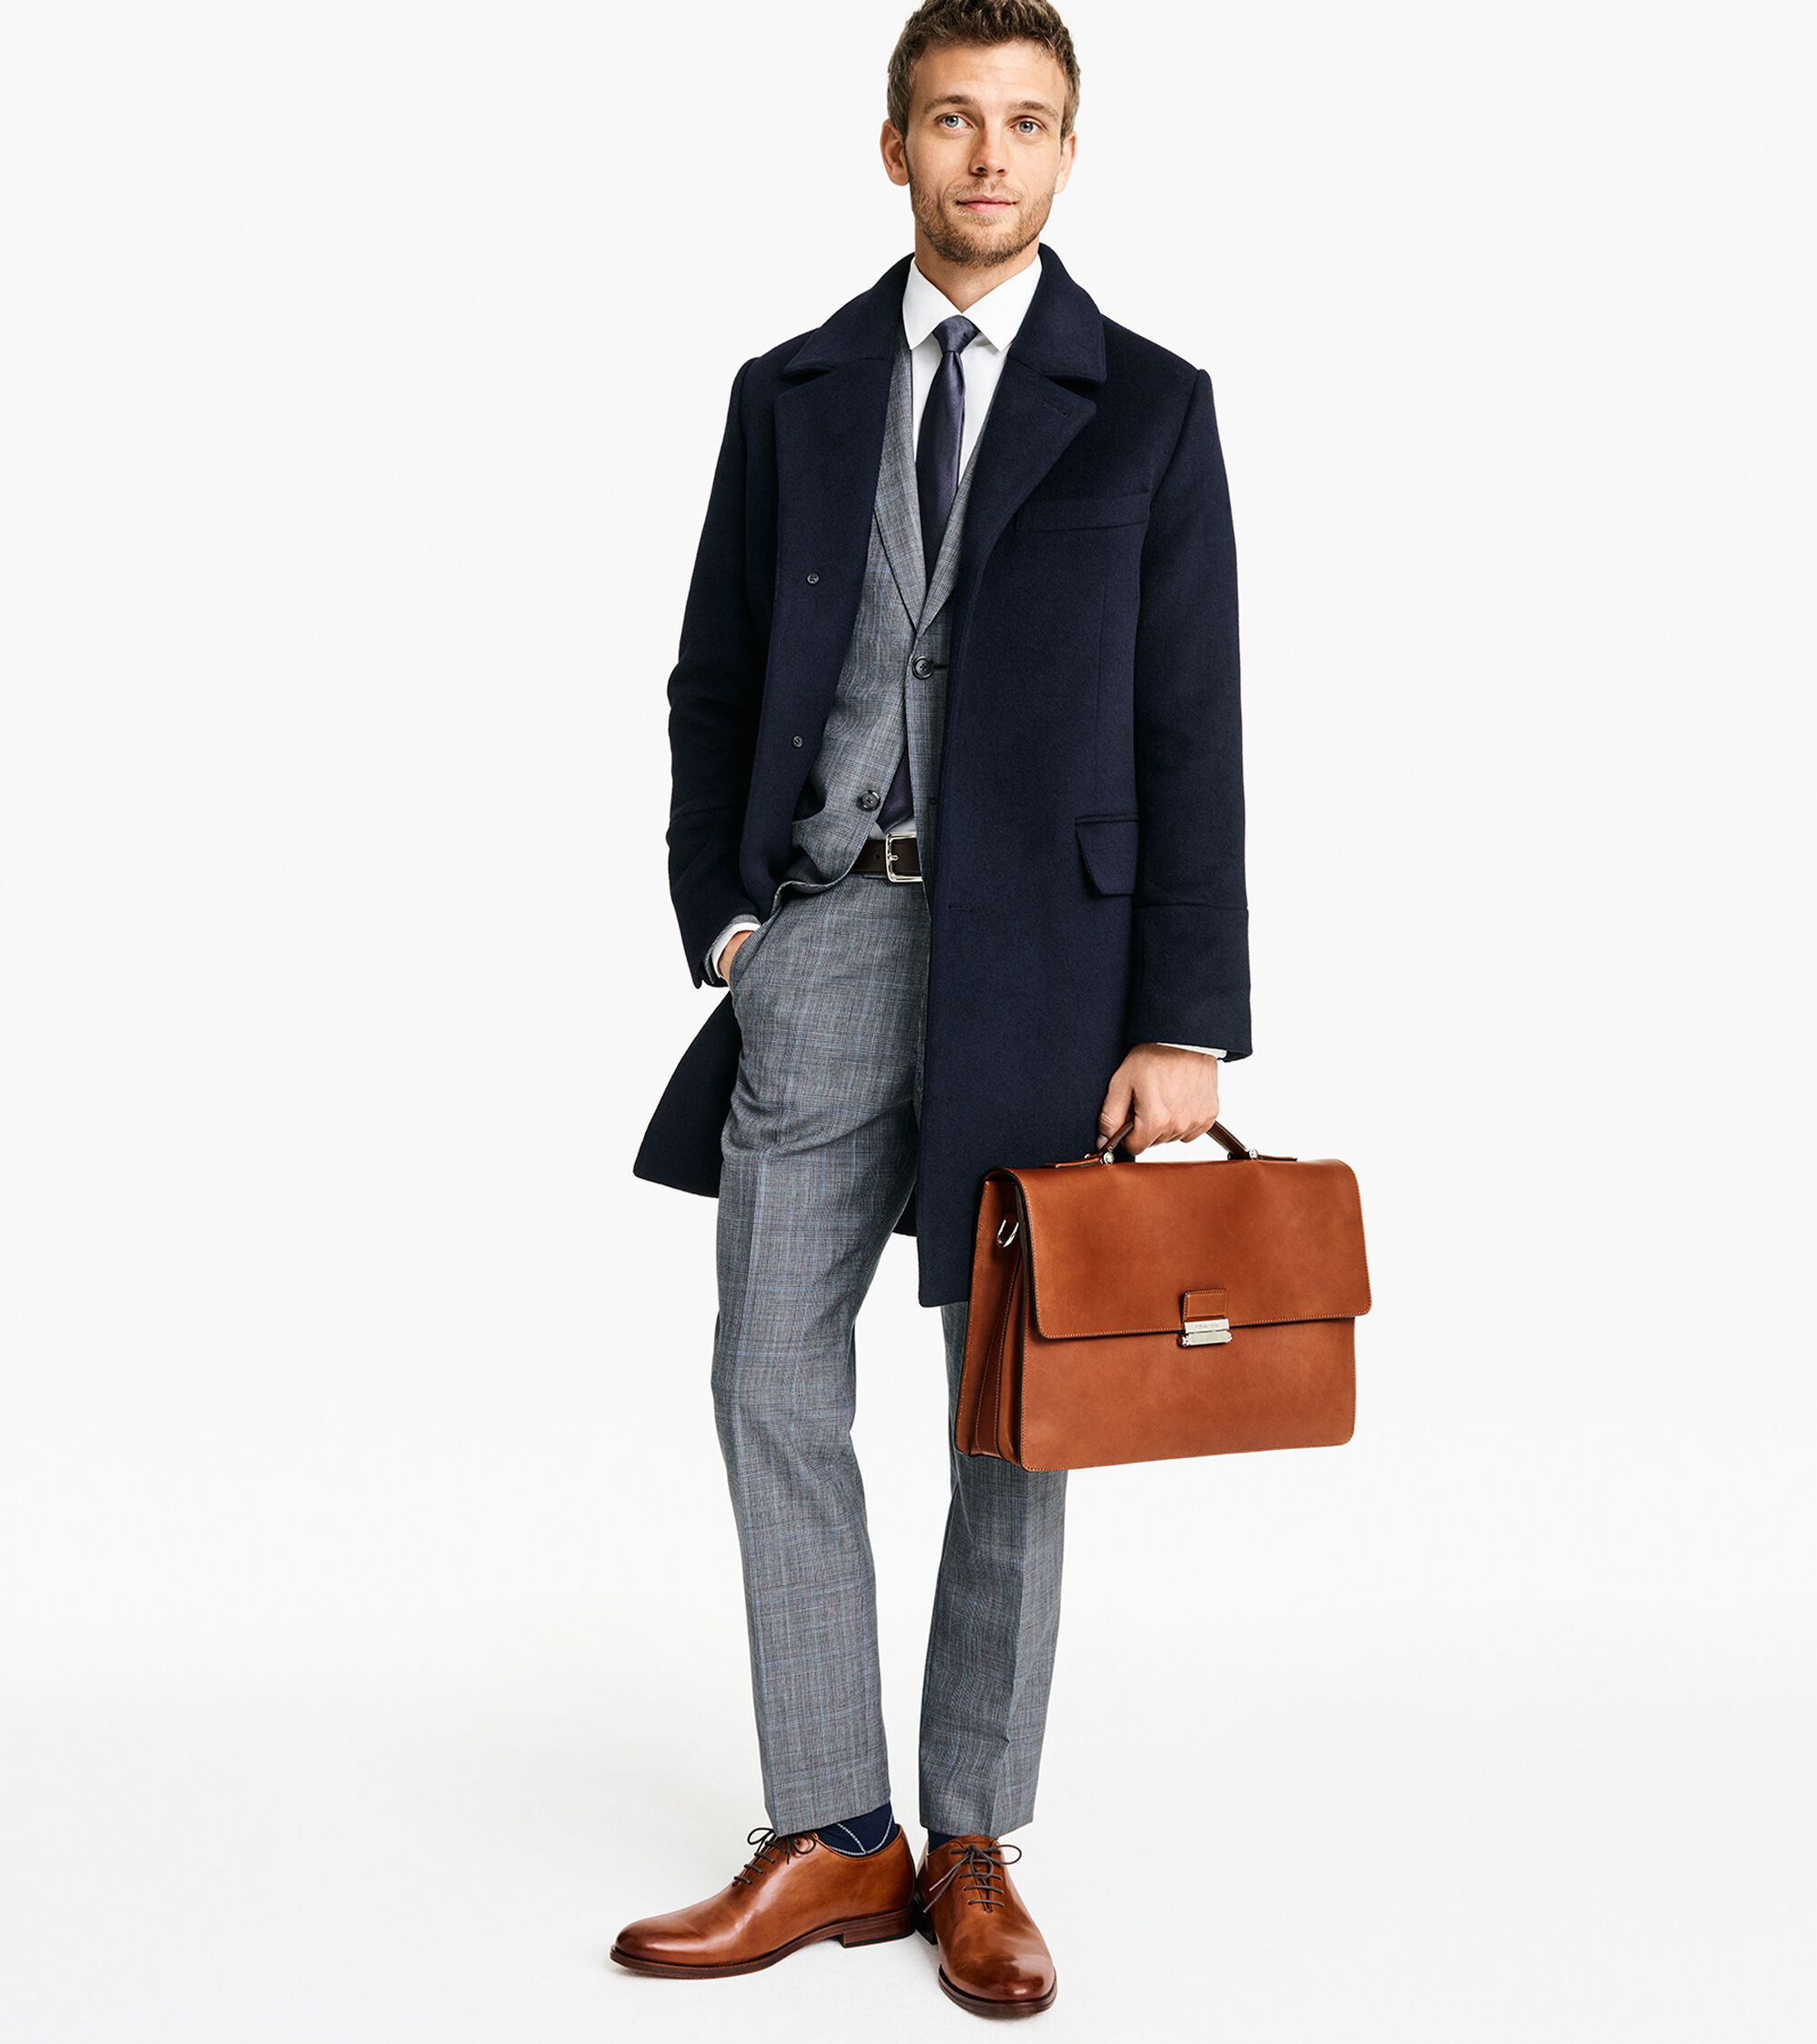 993a067cc7 Men's Washington Grand Double Gusset Briefcase in Brown | Cole Haan